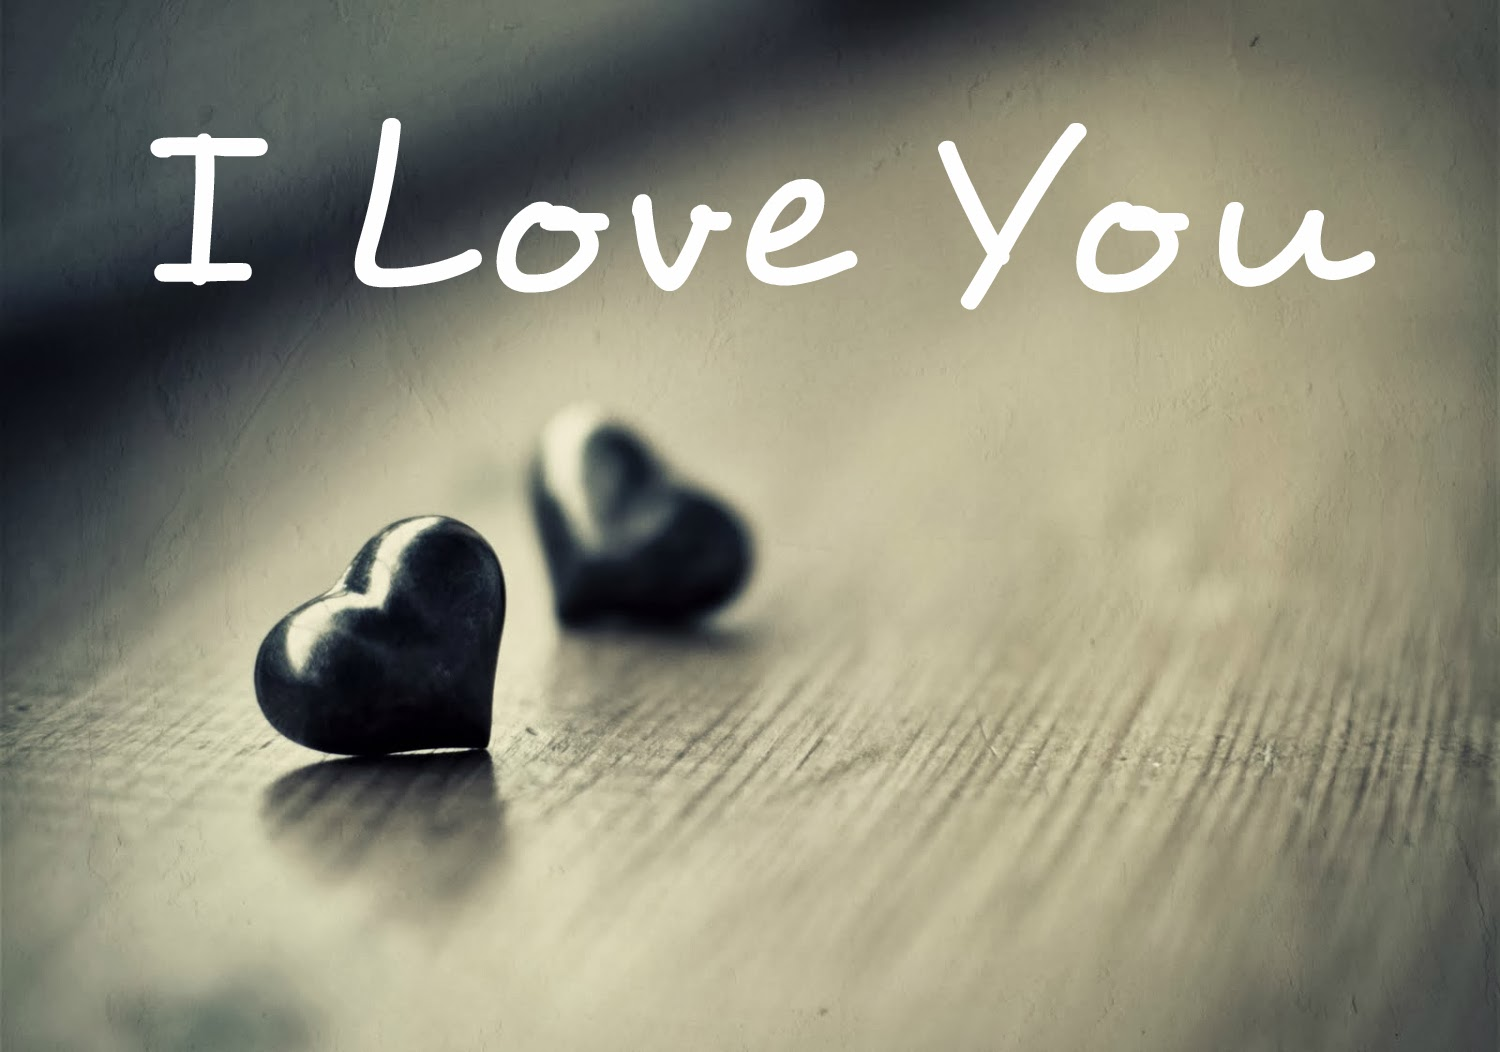 Download I Love You Hd Wallpaper For Mobile: Events News: Happy Valentines Day I Love You Wallpaper HD